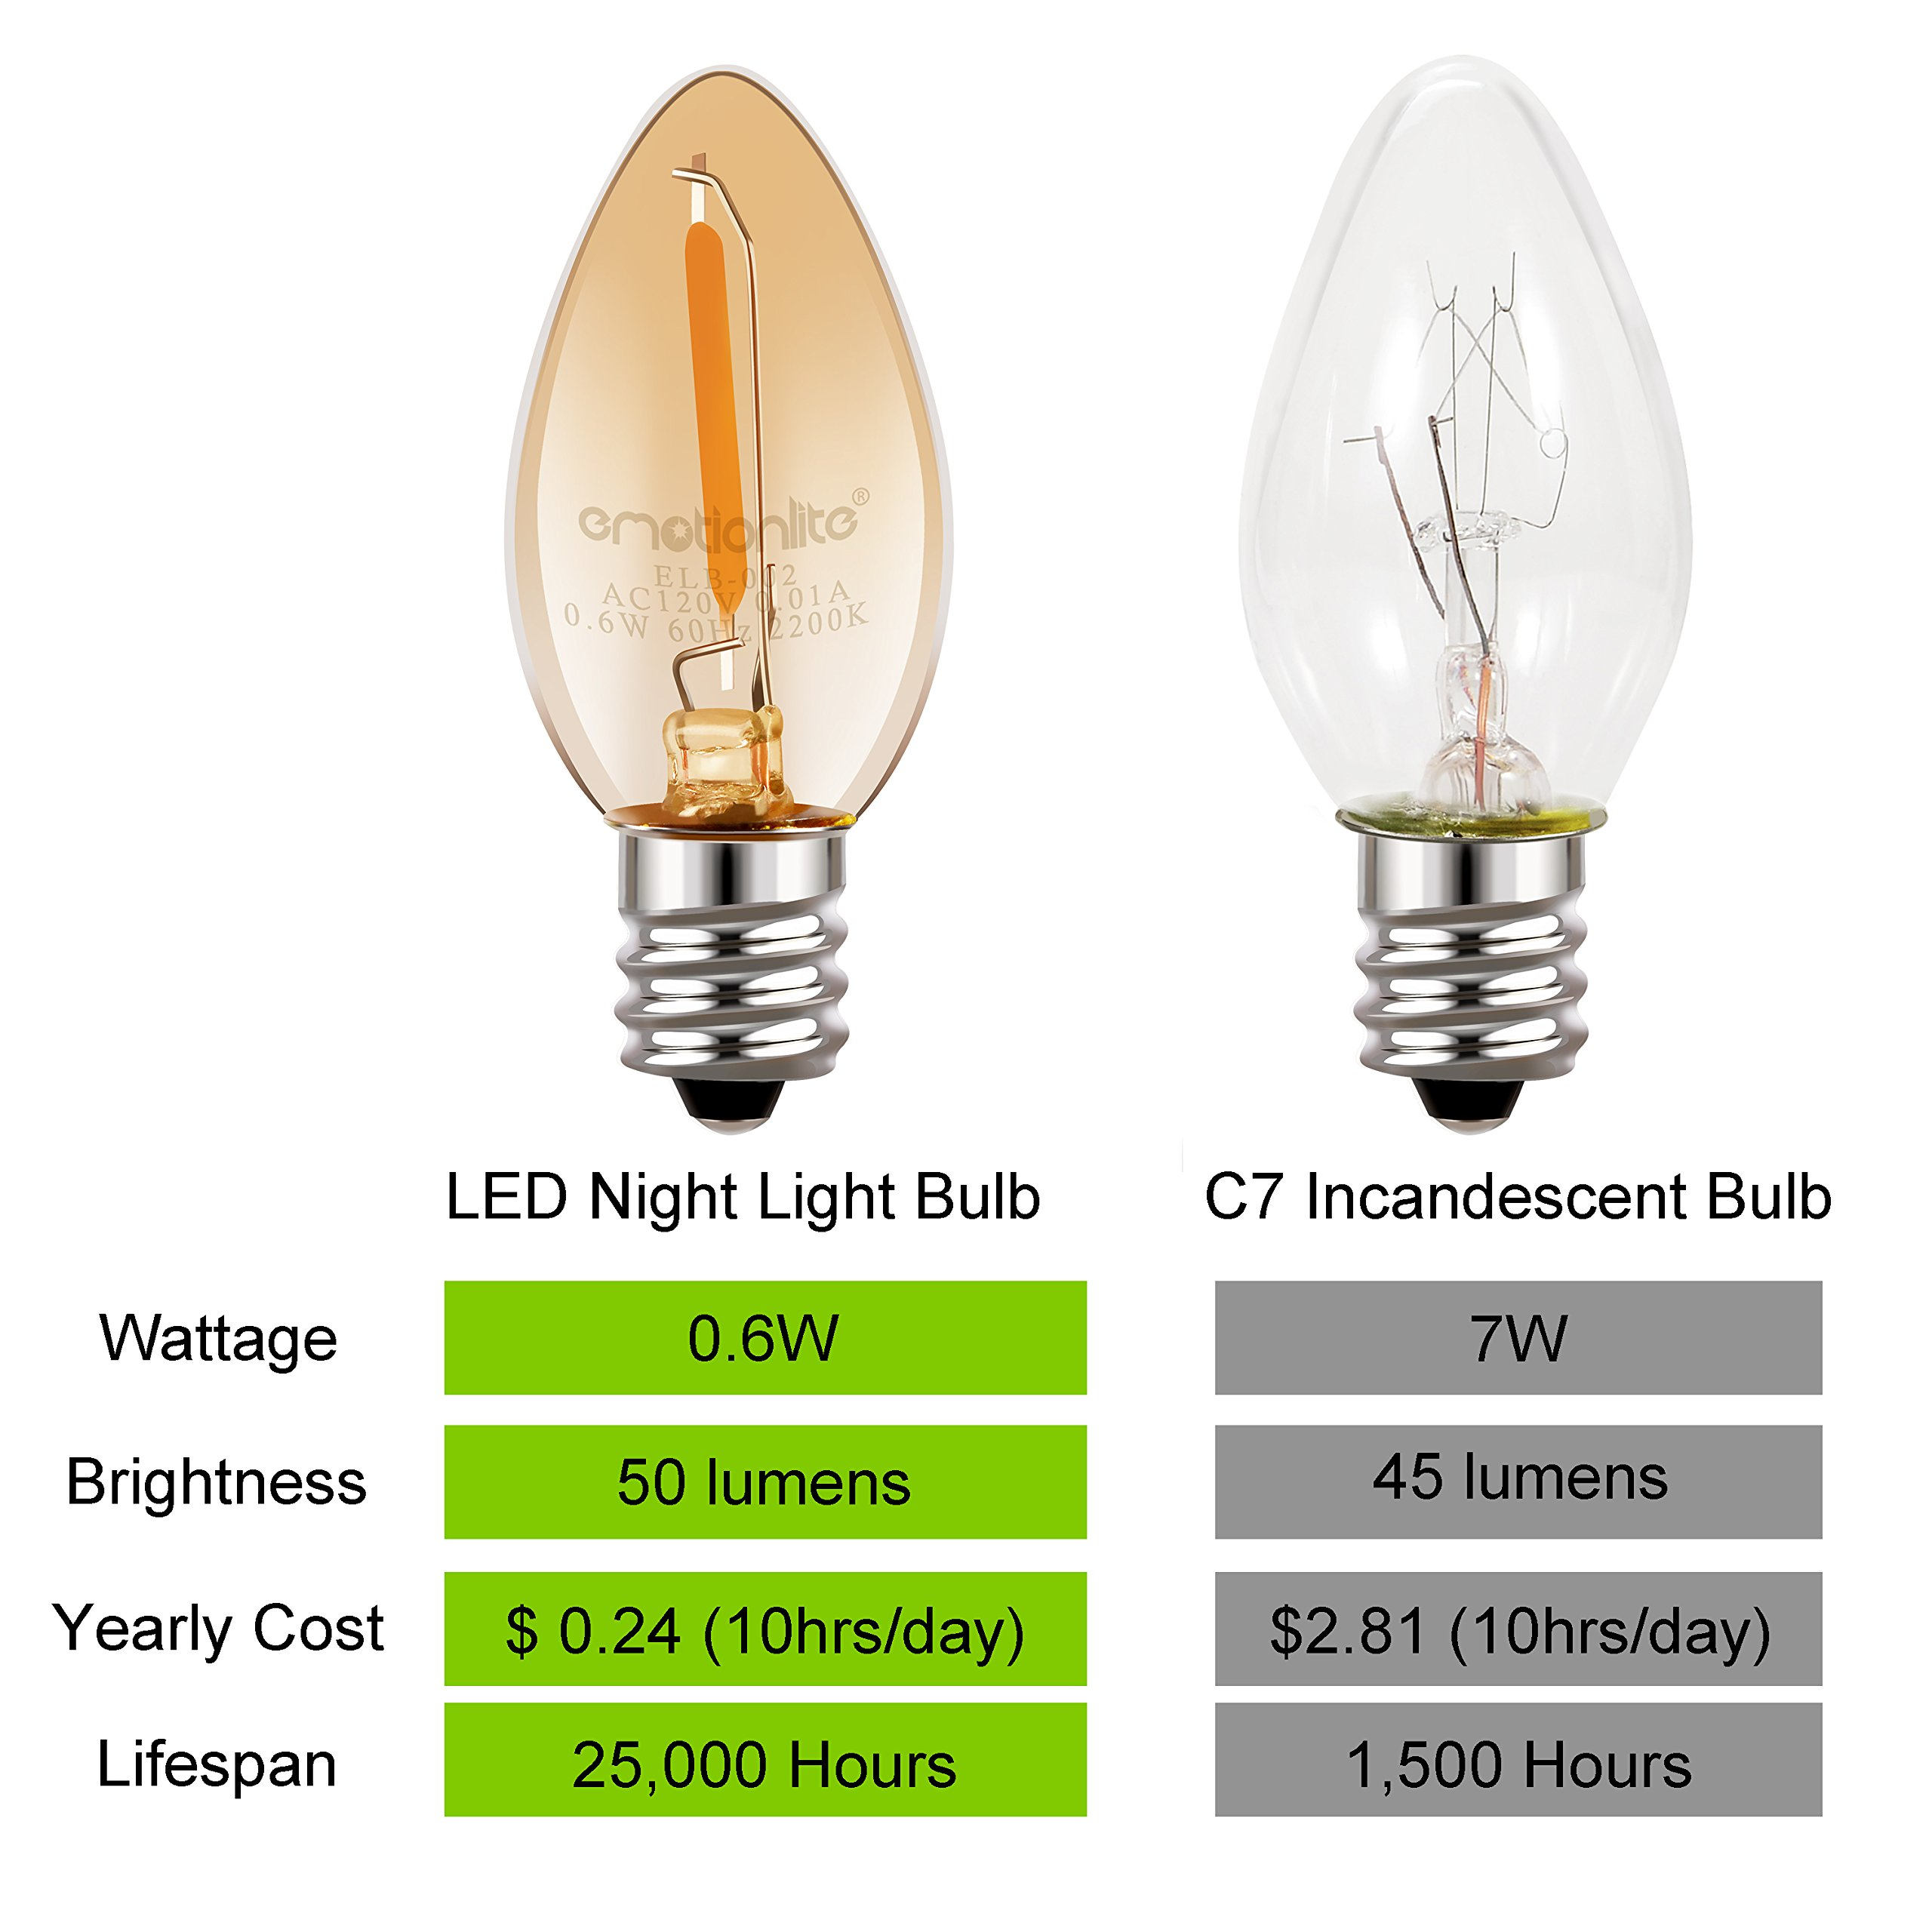 Night Light Bulbs, Emotionlite Amber LED C7 Bulb, 7w Equivalent, E12 Candelabra Base, Salt Lamp and Nightlight Replacement Bulb, 0.6W, Amber Yellowish 2200K, 50LM, 6 Pack by Emotionlite (Image #3)